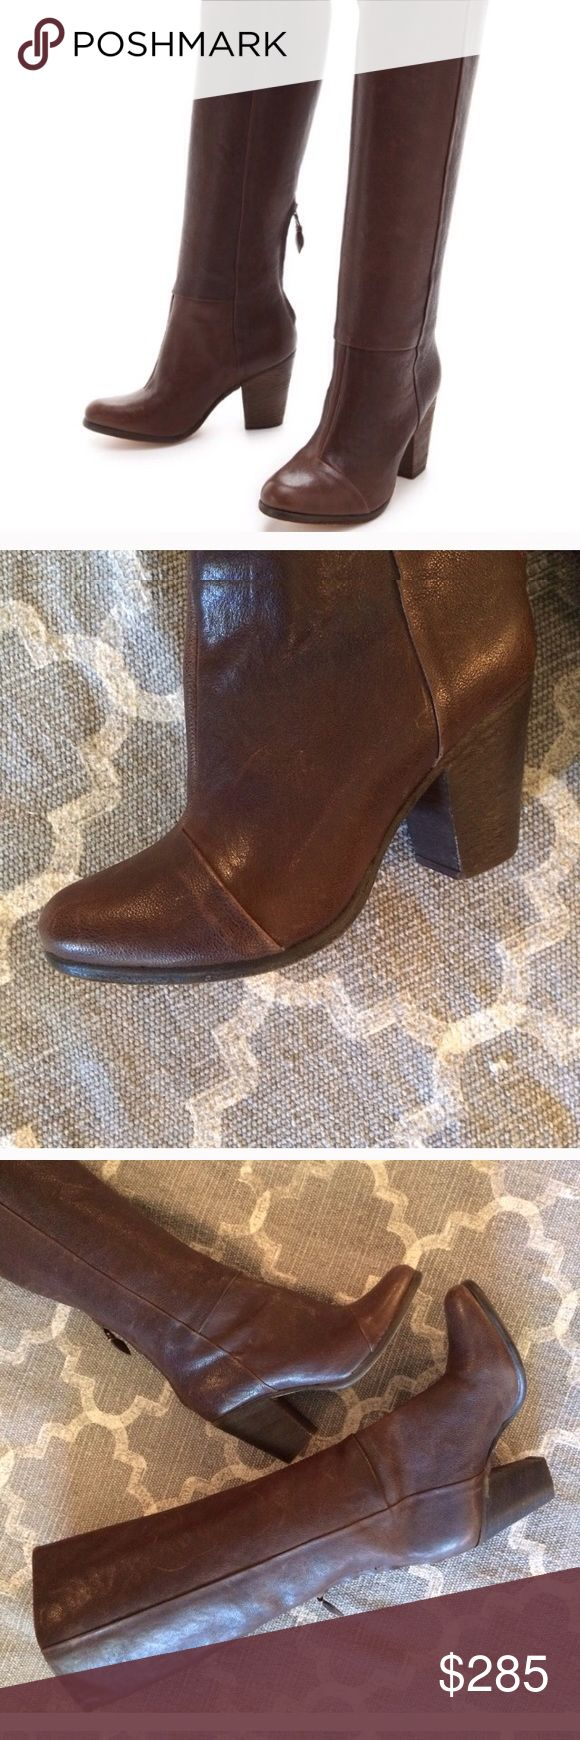 Rag & Bone Newbury Tall Brown Boots 37.5 Used with some scratches here and there, but has tons of wear left. Zippers functioning well. Inside is clean. Soles have normal wear. rag & bone Shoes Heeled Boots